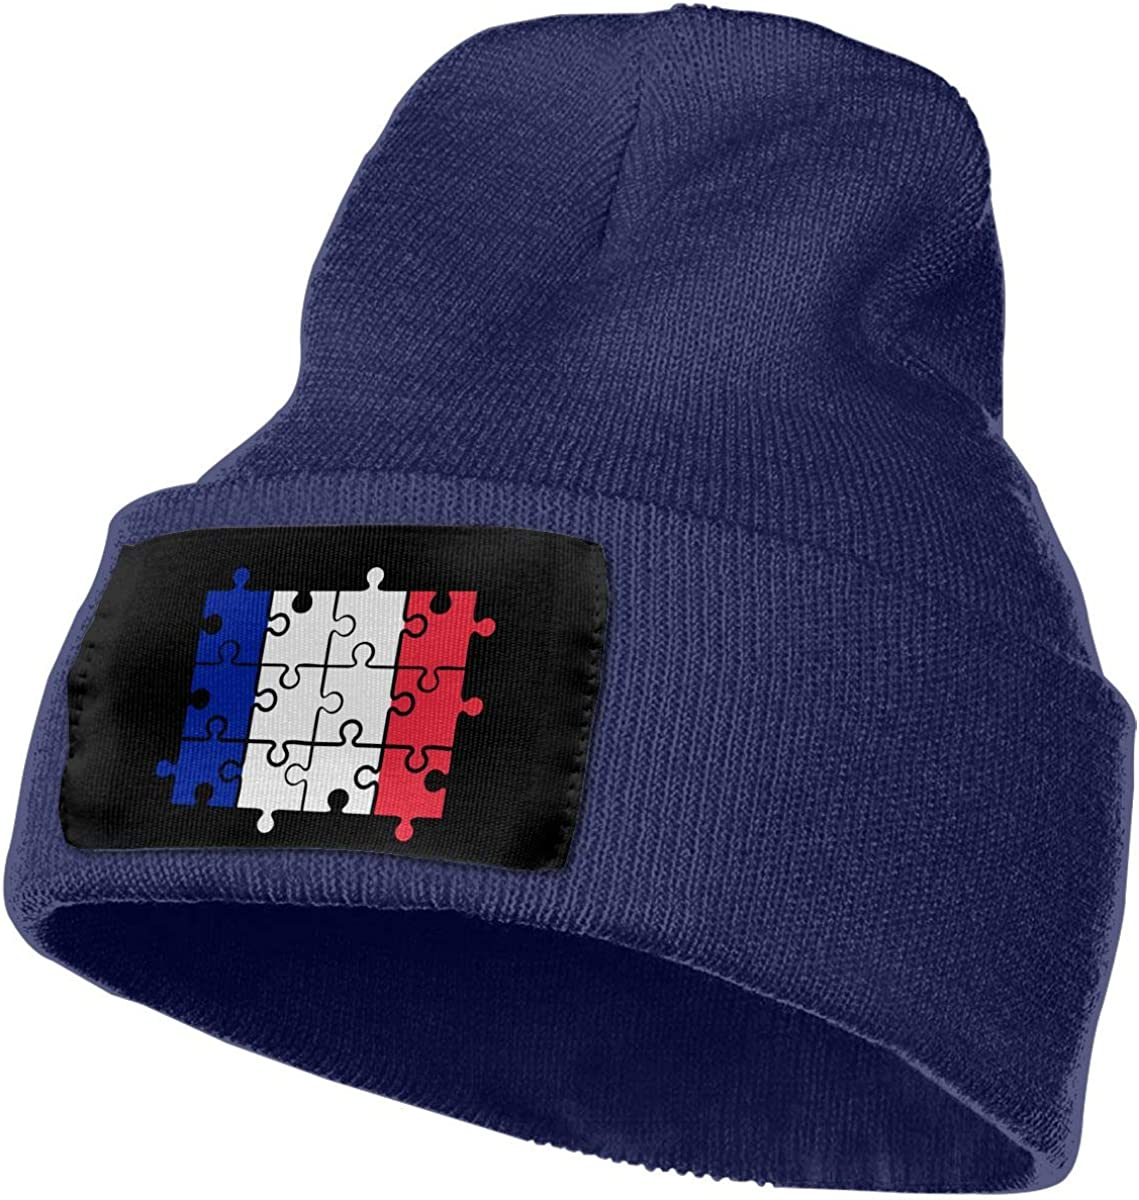 COLLJL-8 Unisex France Flag Puzzle Outdoor Fashion Knit Beanies Hat Soft Winter Skull Caps